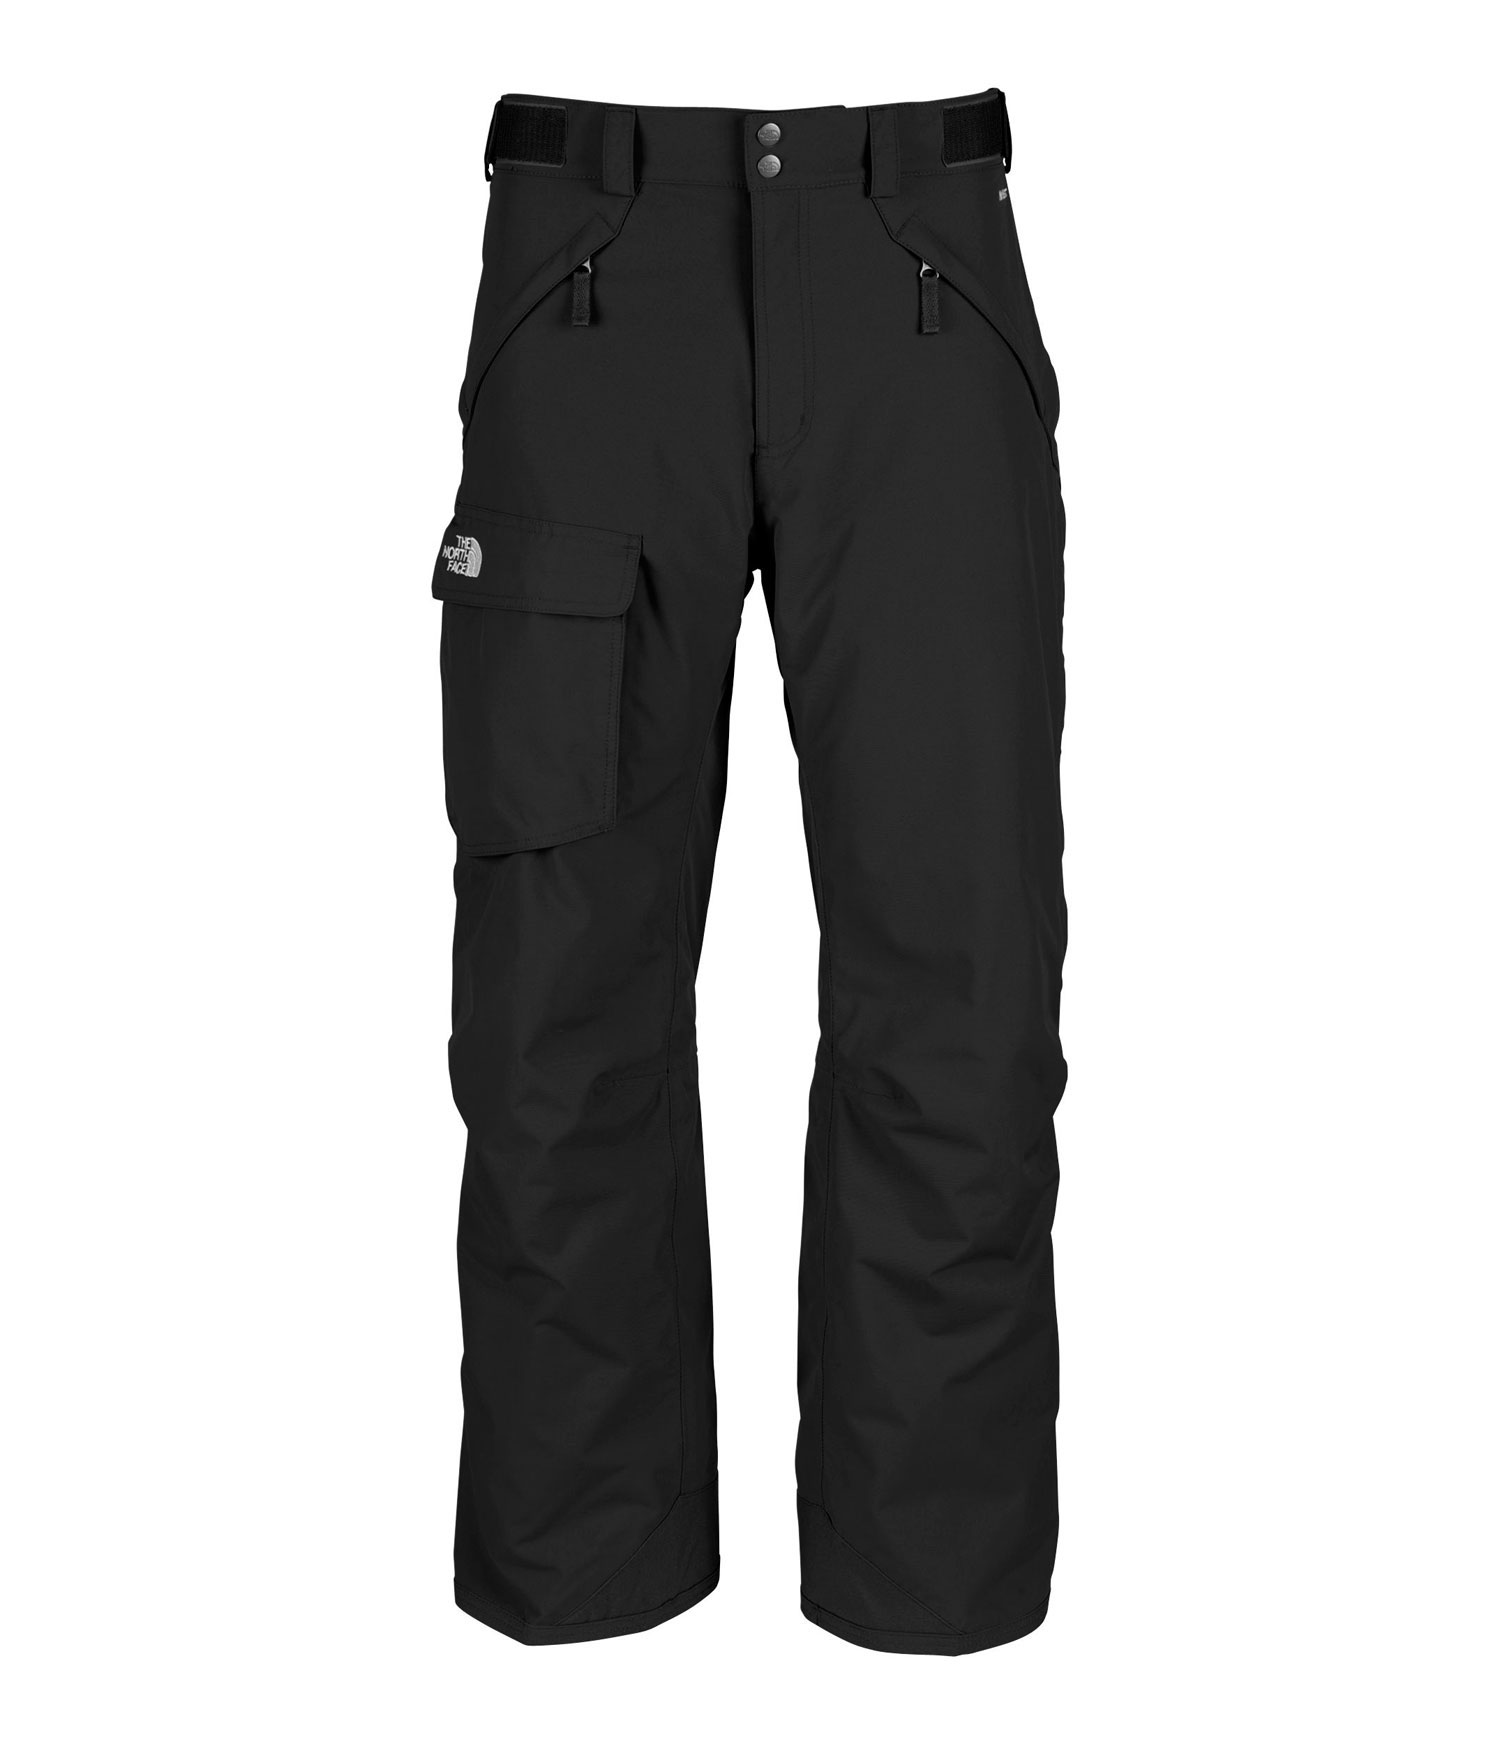 "Ski Free-fitting, high-performance pant with durable, waterproof construction. Key Features of The North Face Freedom Shell Ski Pants: Avg Weight: 770 g (27.16 oz) Inseam: S 29"", R 31"", L 33"" Fabric: 210D x 235D 189 g/m2 HyVent® 2L foxfaille nylon faille Waterproof, breathable, fully seam sealed Adjustable waist tabs Handwarmer zip pockets Exterior thigh vents with mesh gussets Flap cargo pocket StretchVent ™ gaiter with gripper elastic Chimney Venting™ system Reinforced cuff - $97.95"